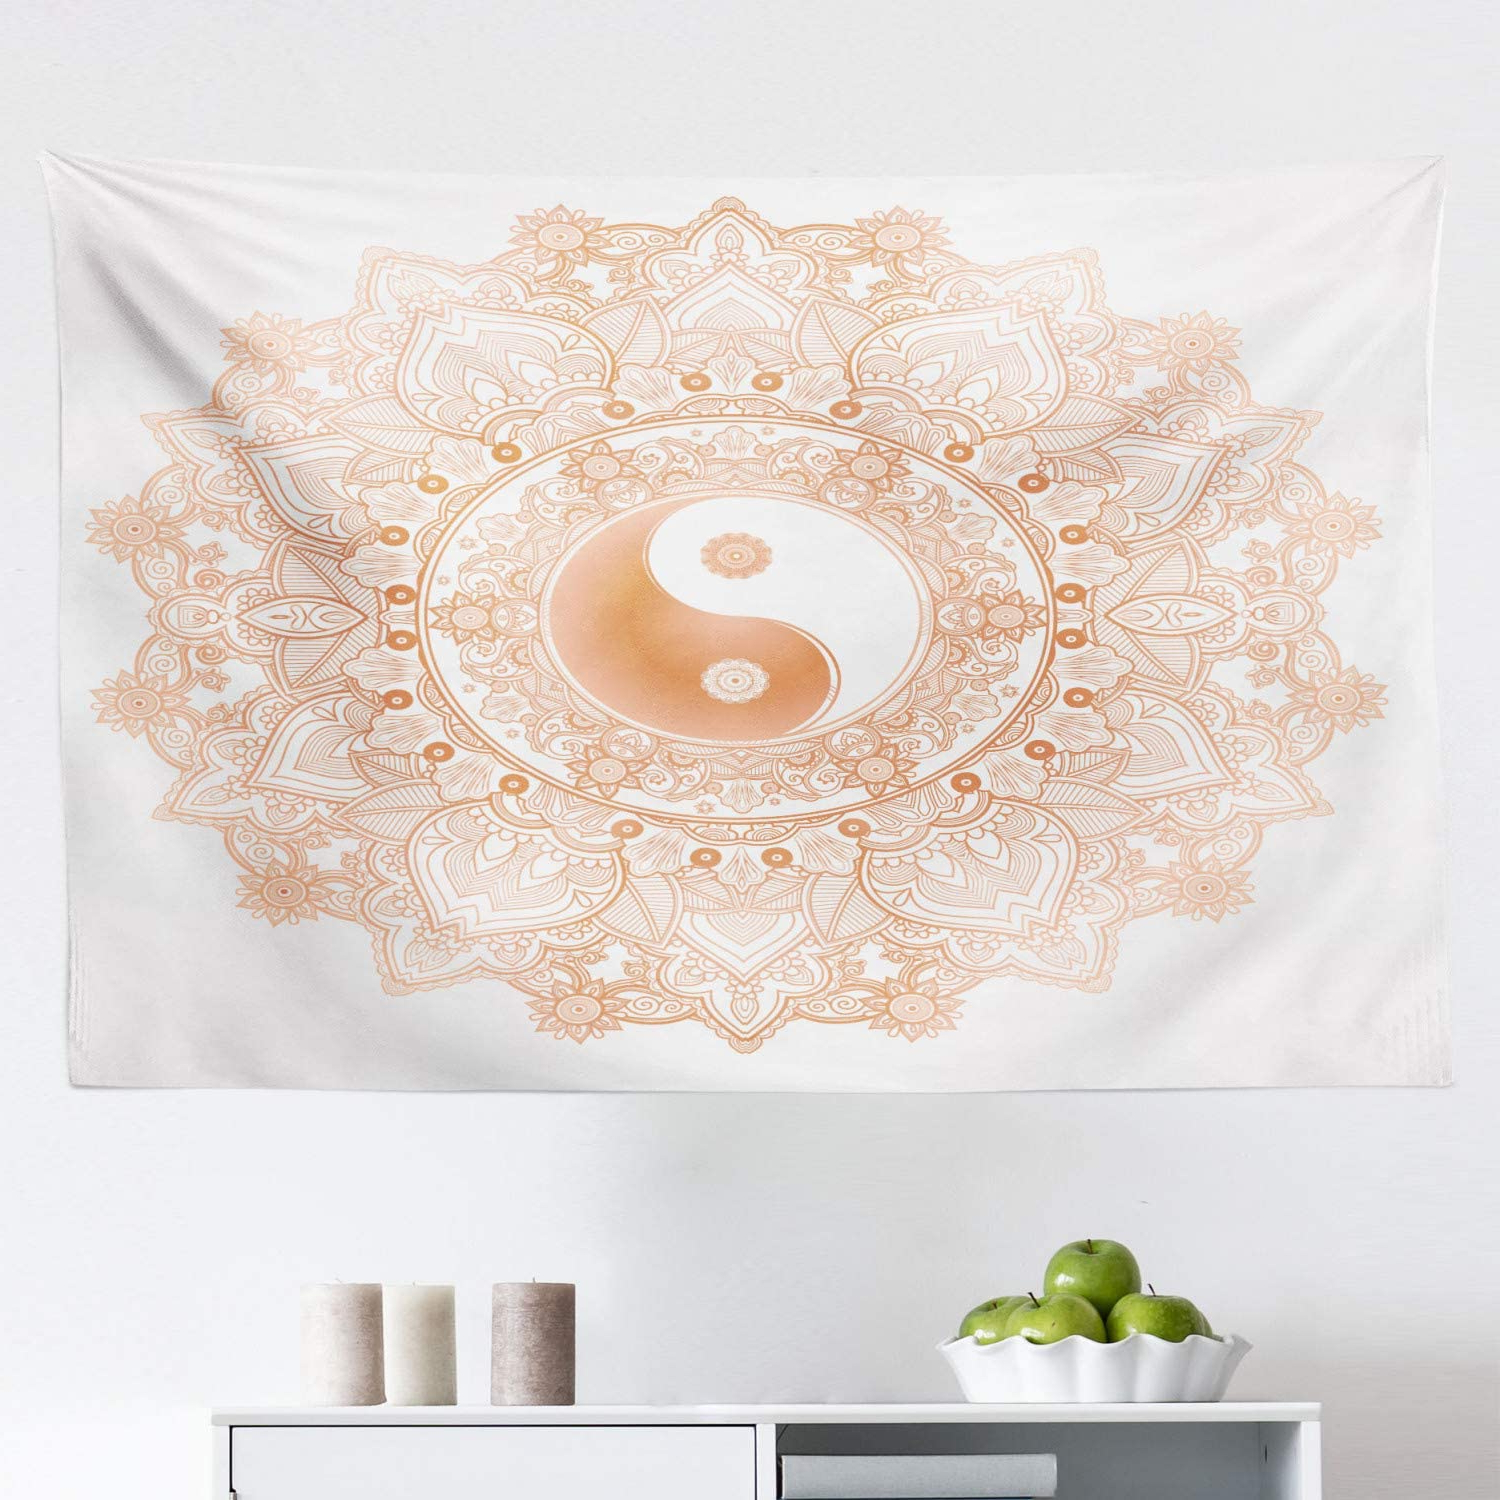 Best And Newest Lunarable Ying Yang Tapestry, Circle Yin Yang Mandala Unity And Peace In Opposites Retro Boho, Fabric Wall Hanging Decor For Bedroom Living Room Dorm, Intended For Blended Fabric Wall Hangings With Rod Included (View 17 of 20)